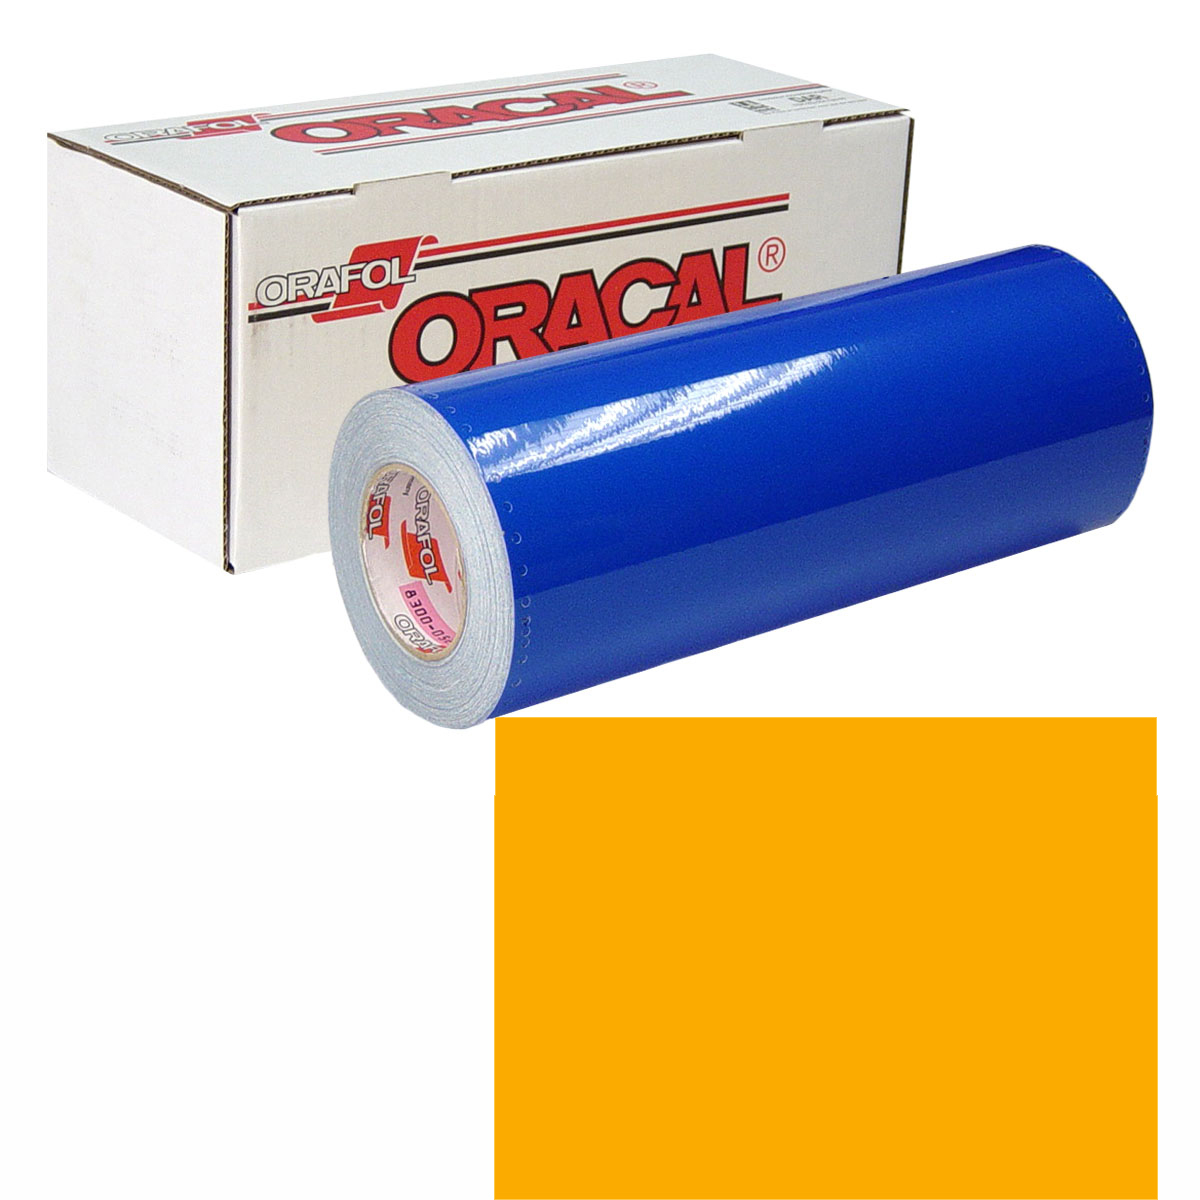 ORACAL 631 Unp 30in X 10yd 020 Golden Yellow